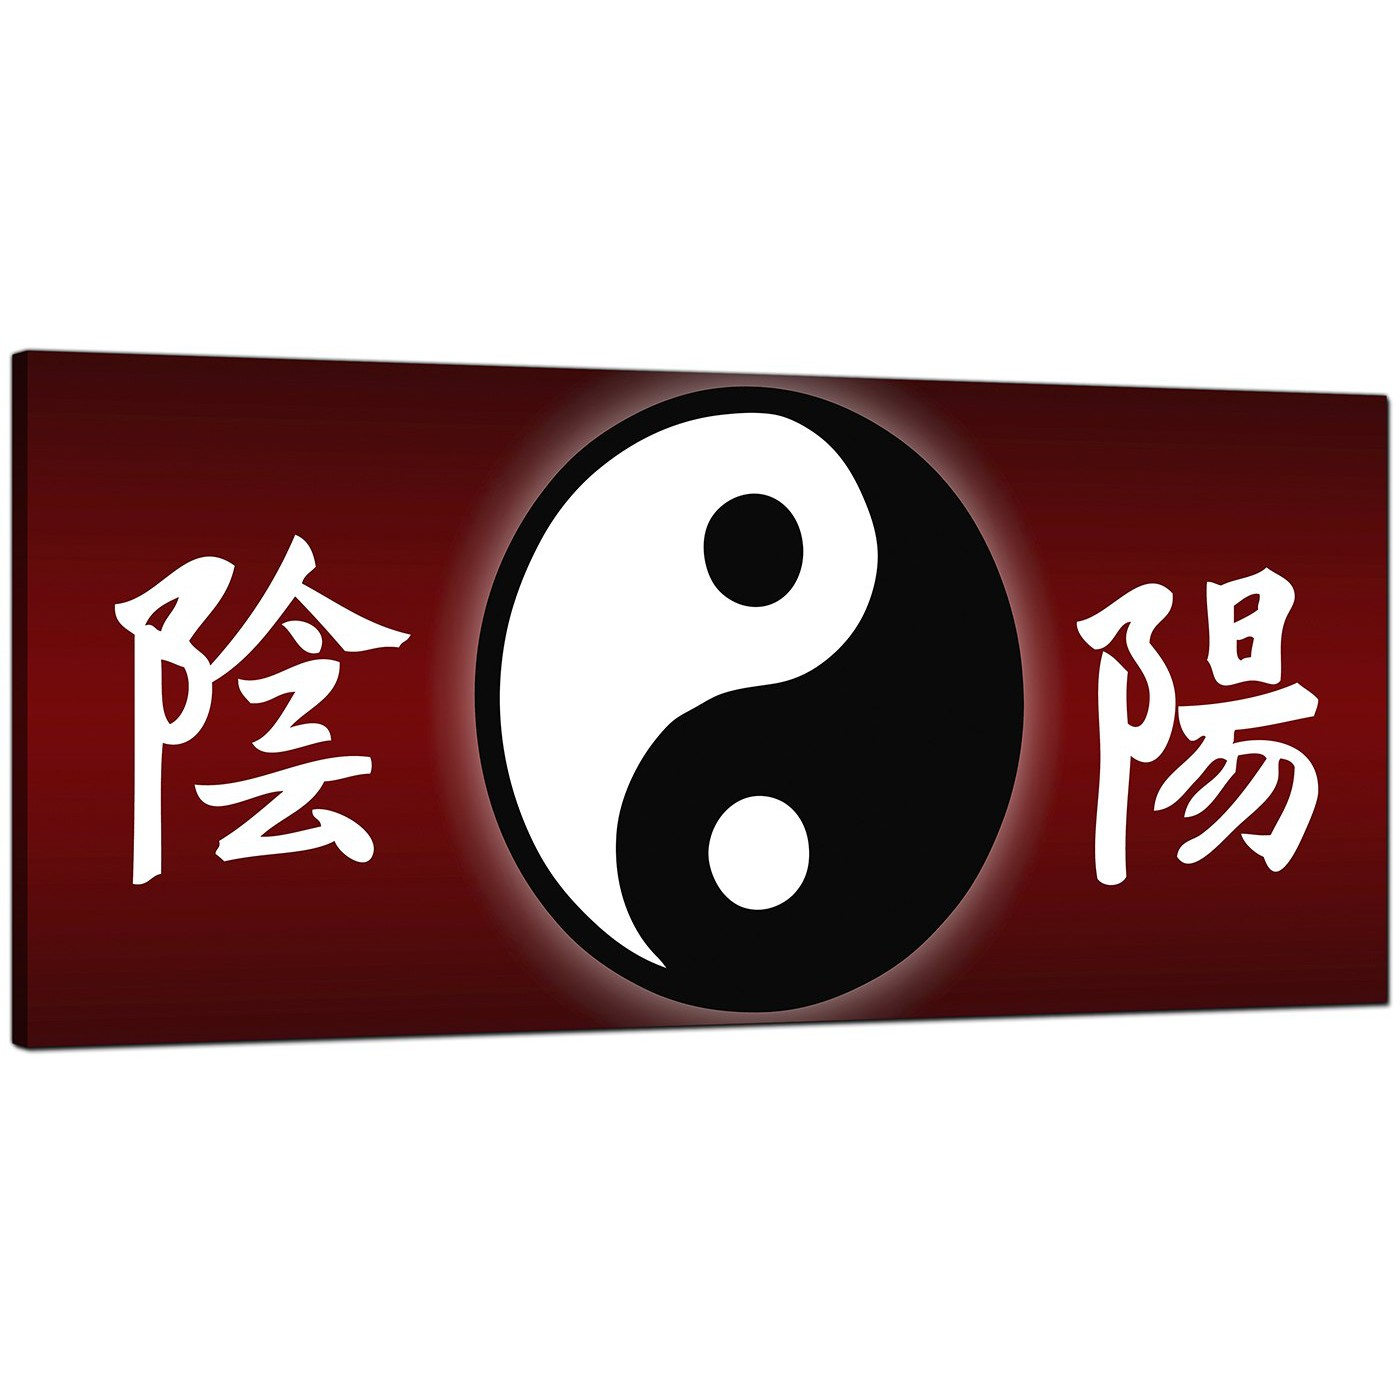 Cheap Red Canvas Wall Art Of Chinese Writing And Yin Yang Symbol